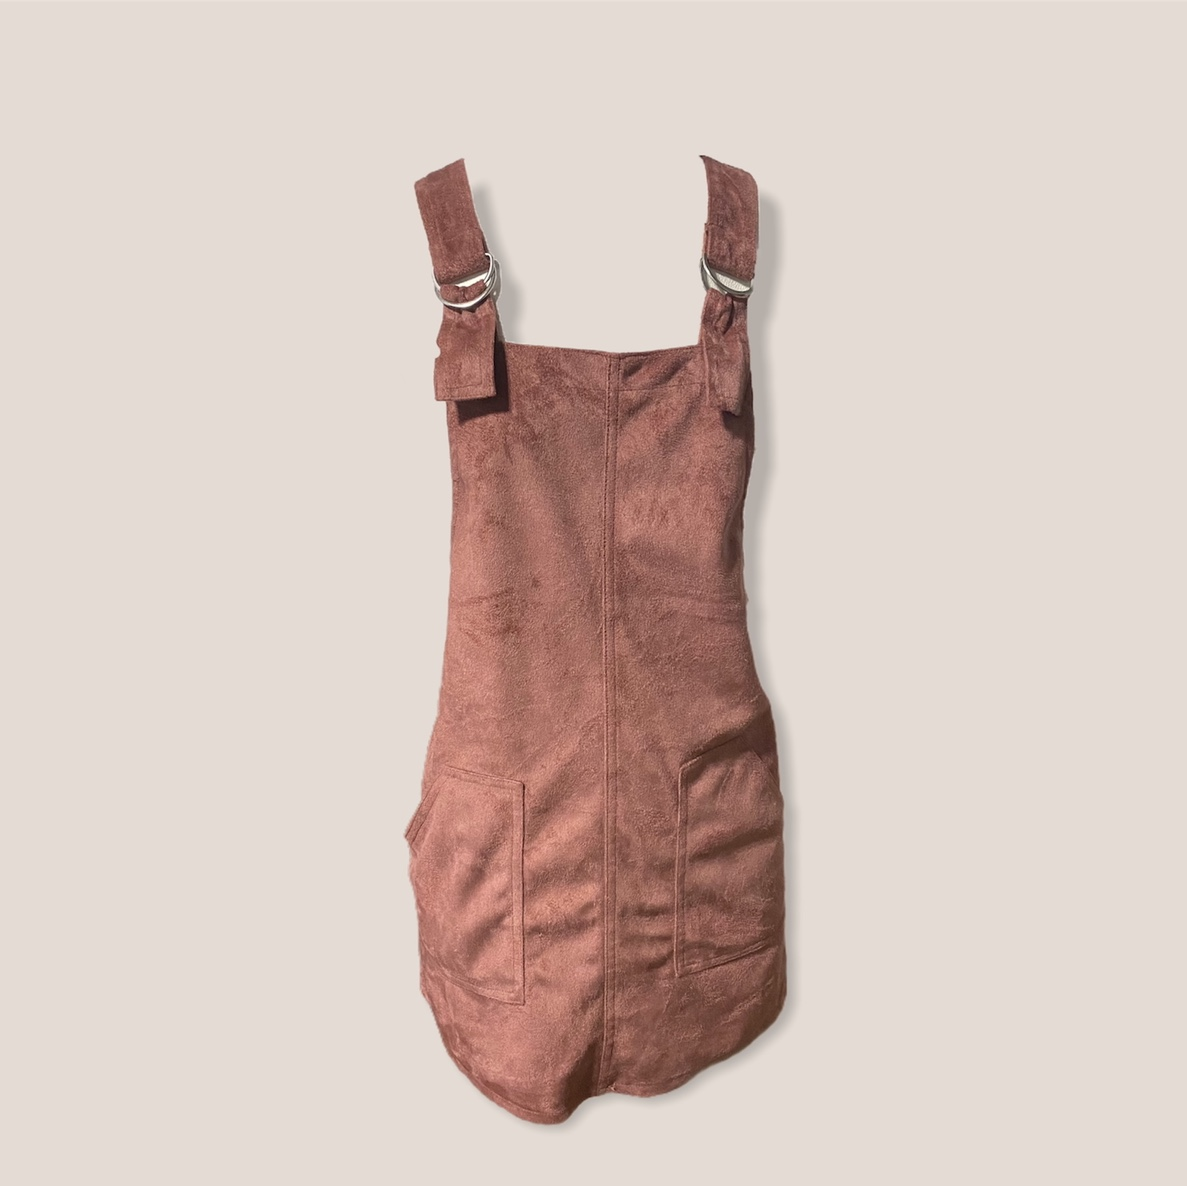 Product Image 1 - Sleeveless Primark Polyester Overalls in